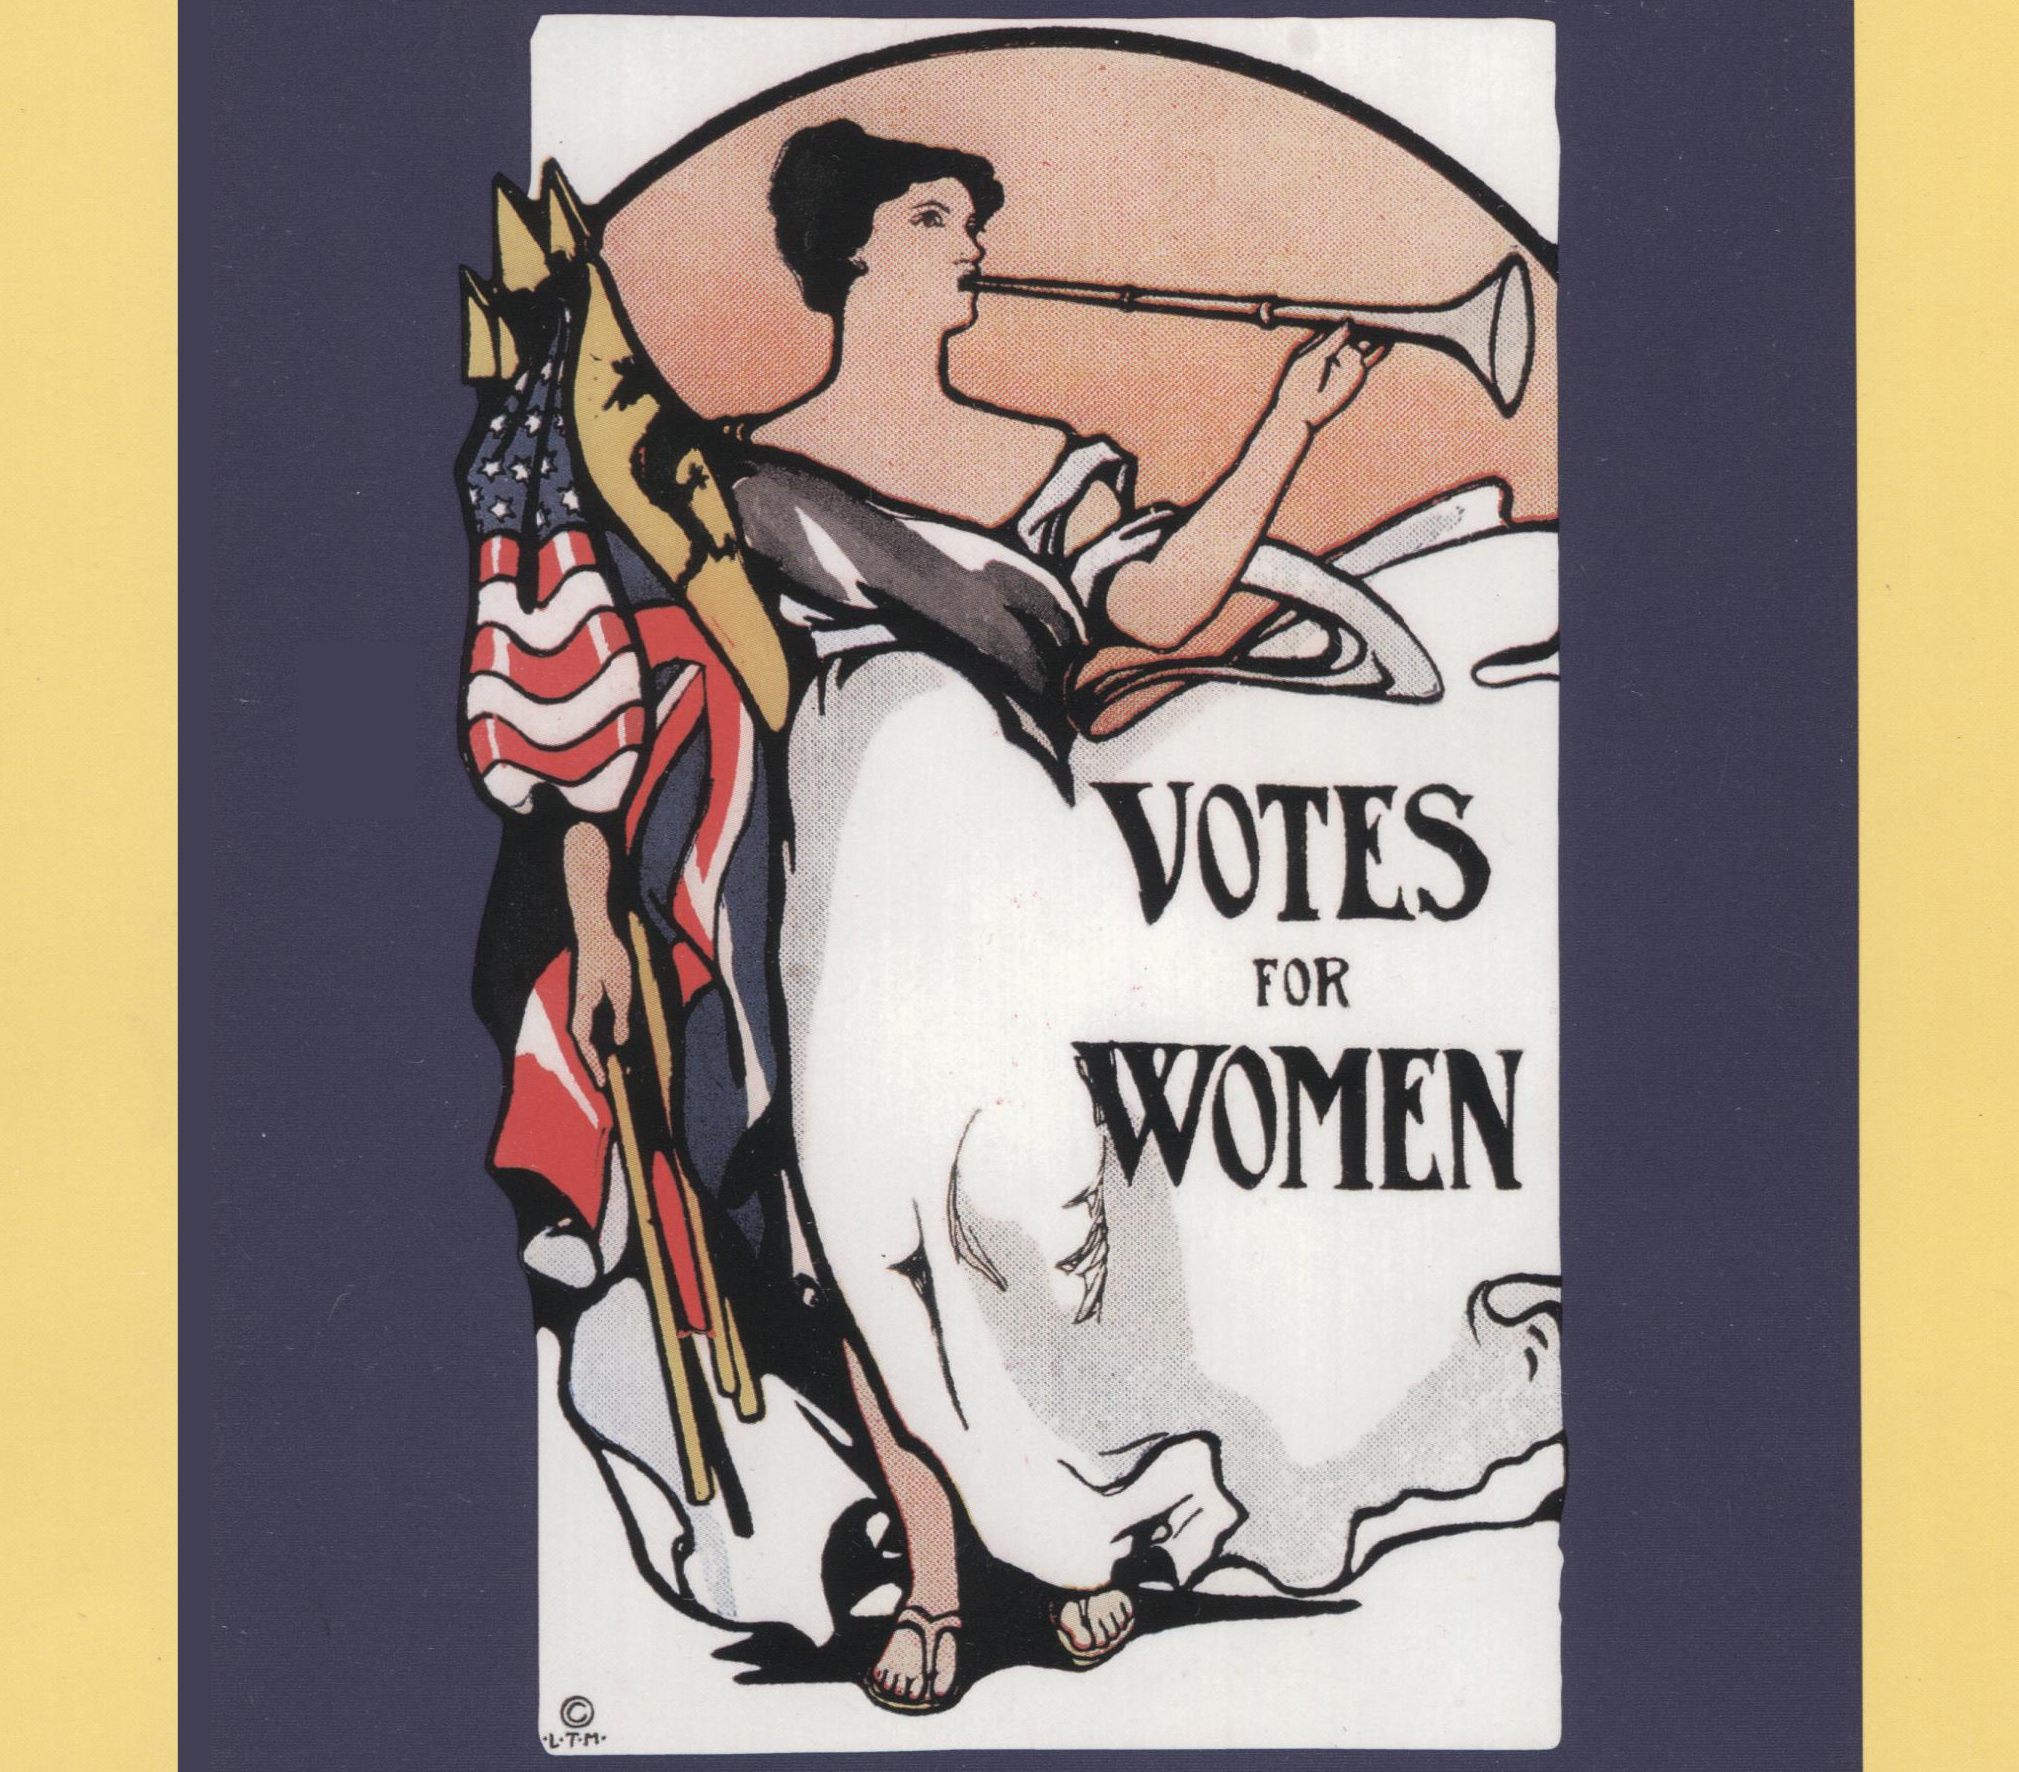 VOTES FOR WOMEN UNFINISHED BUSINESS